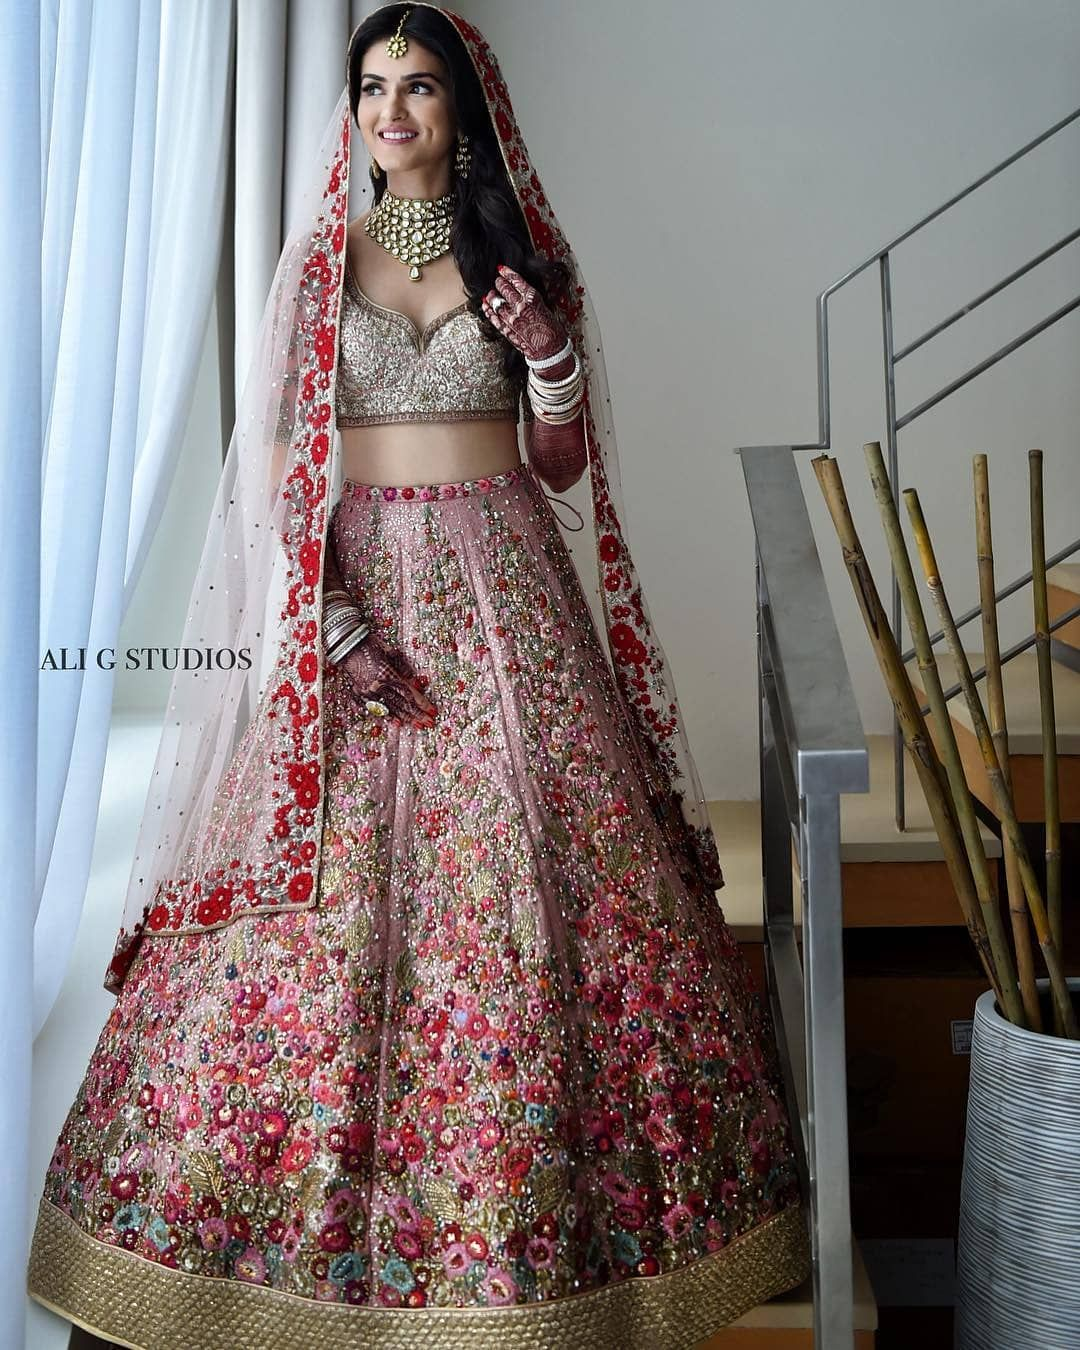 66ecb36cfa 50+ Lehenga Blouse Designs To Browse & Take Inspiration From ...